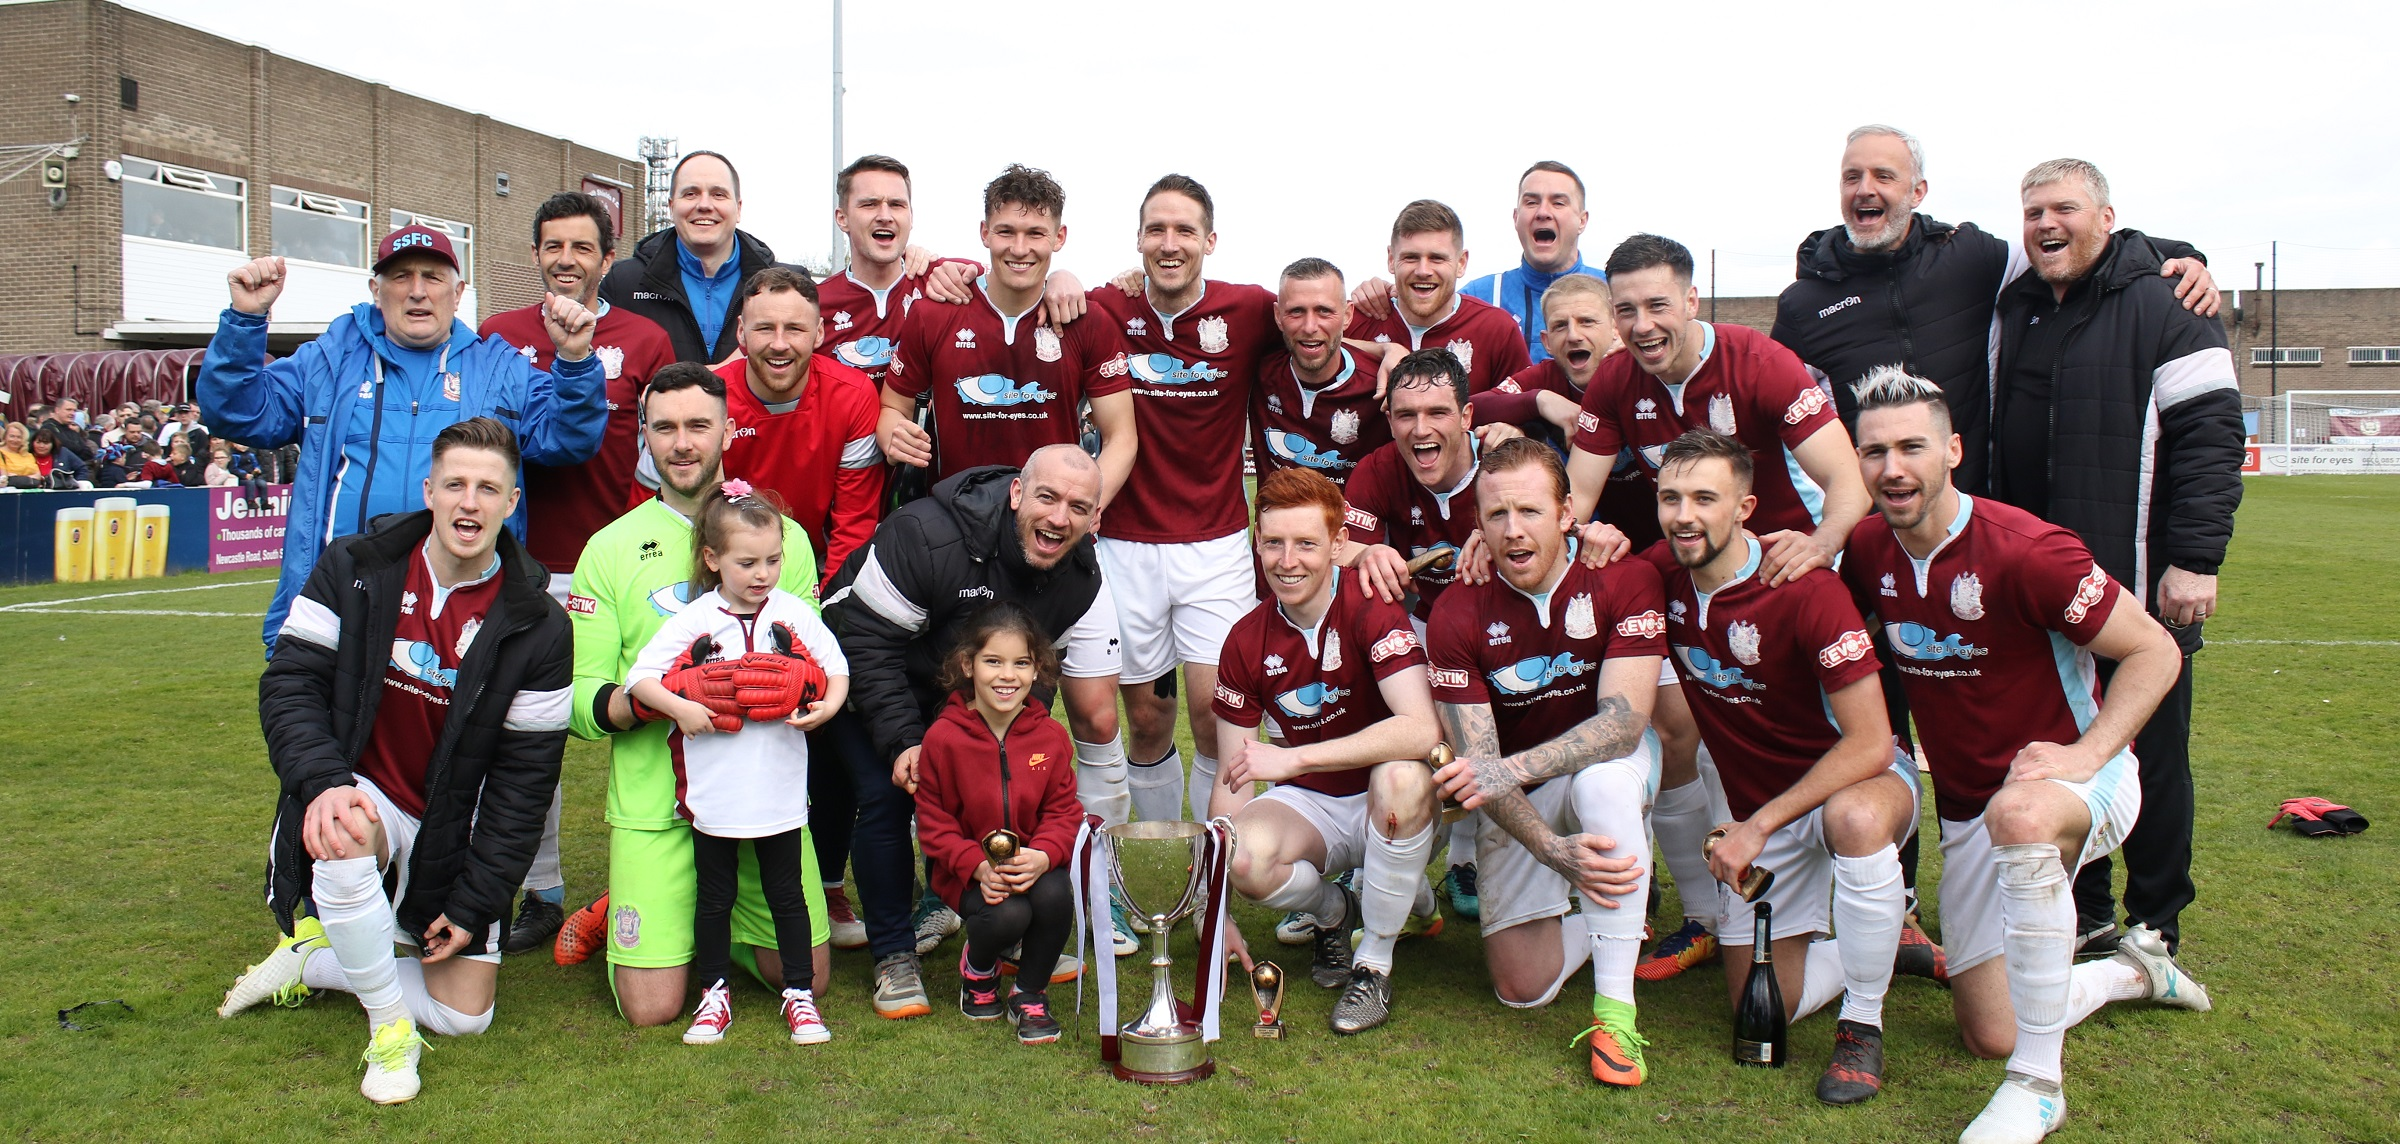 South Shields 2-1 Colne: Champions sign off with win